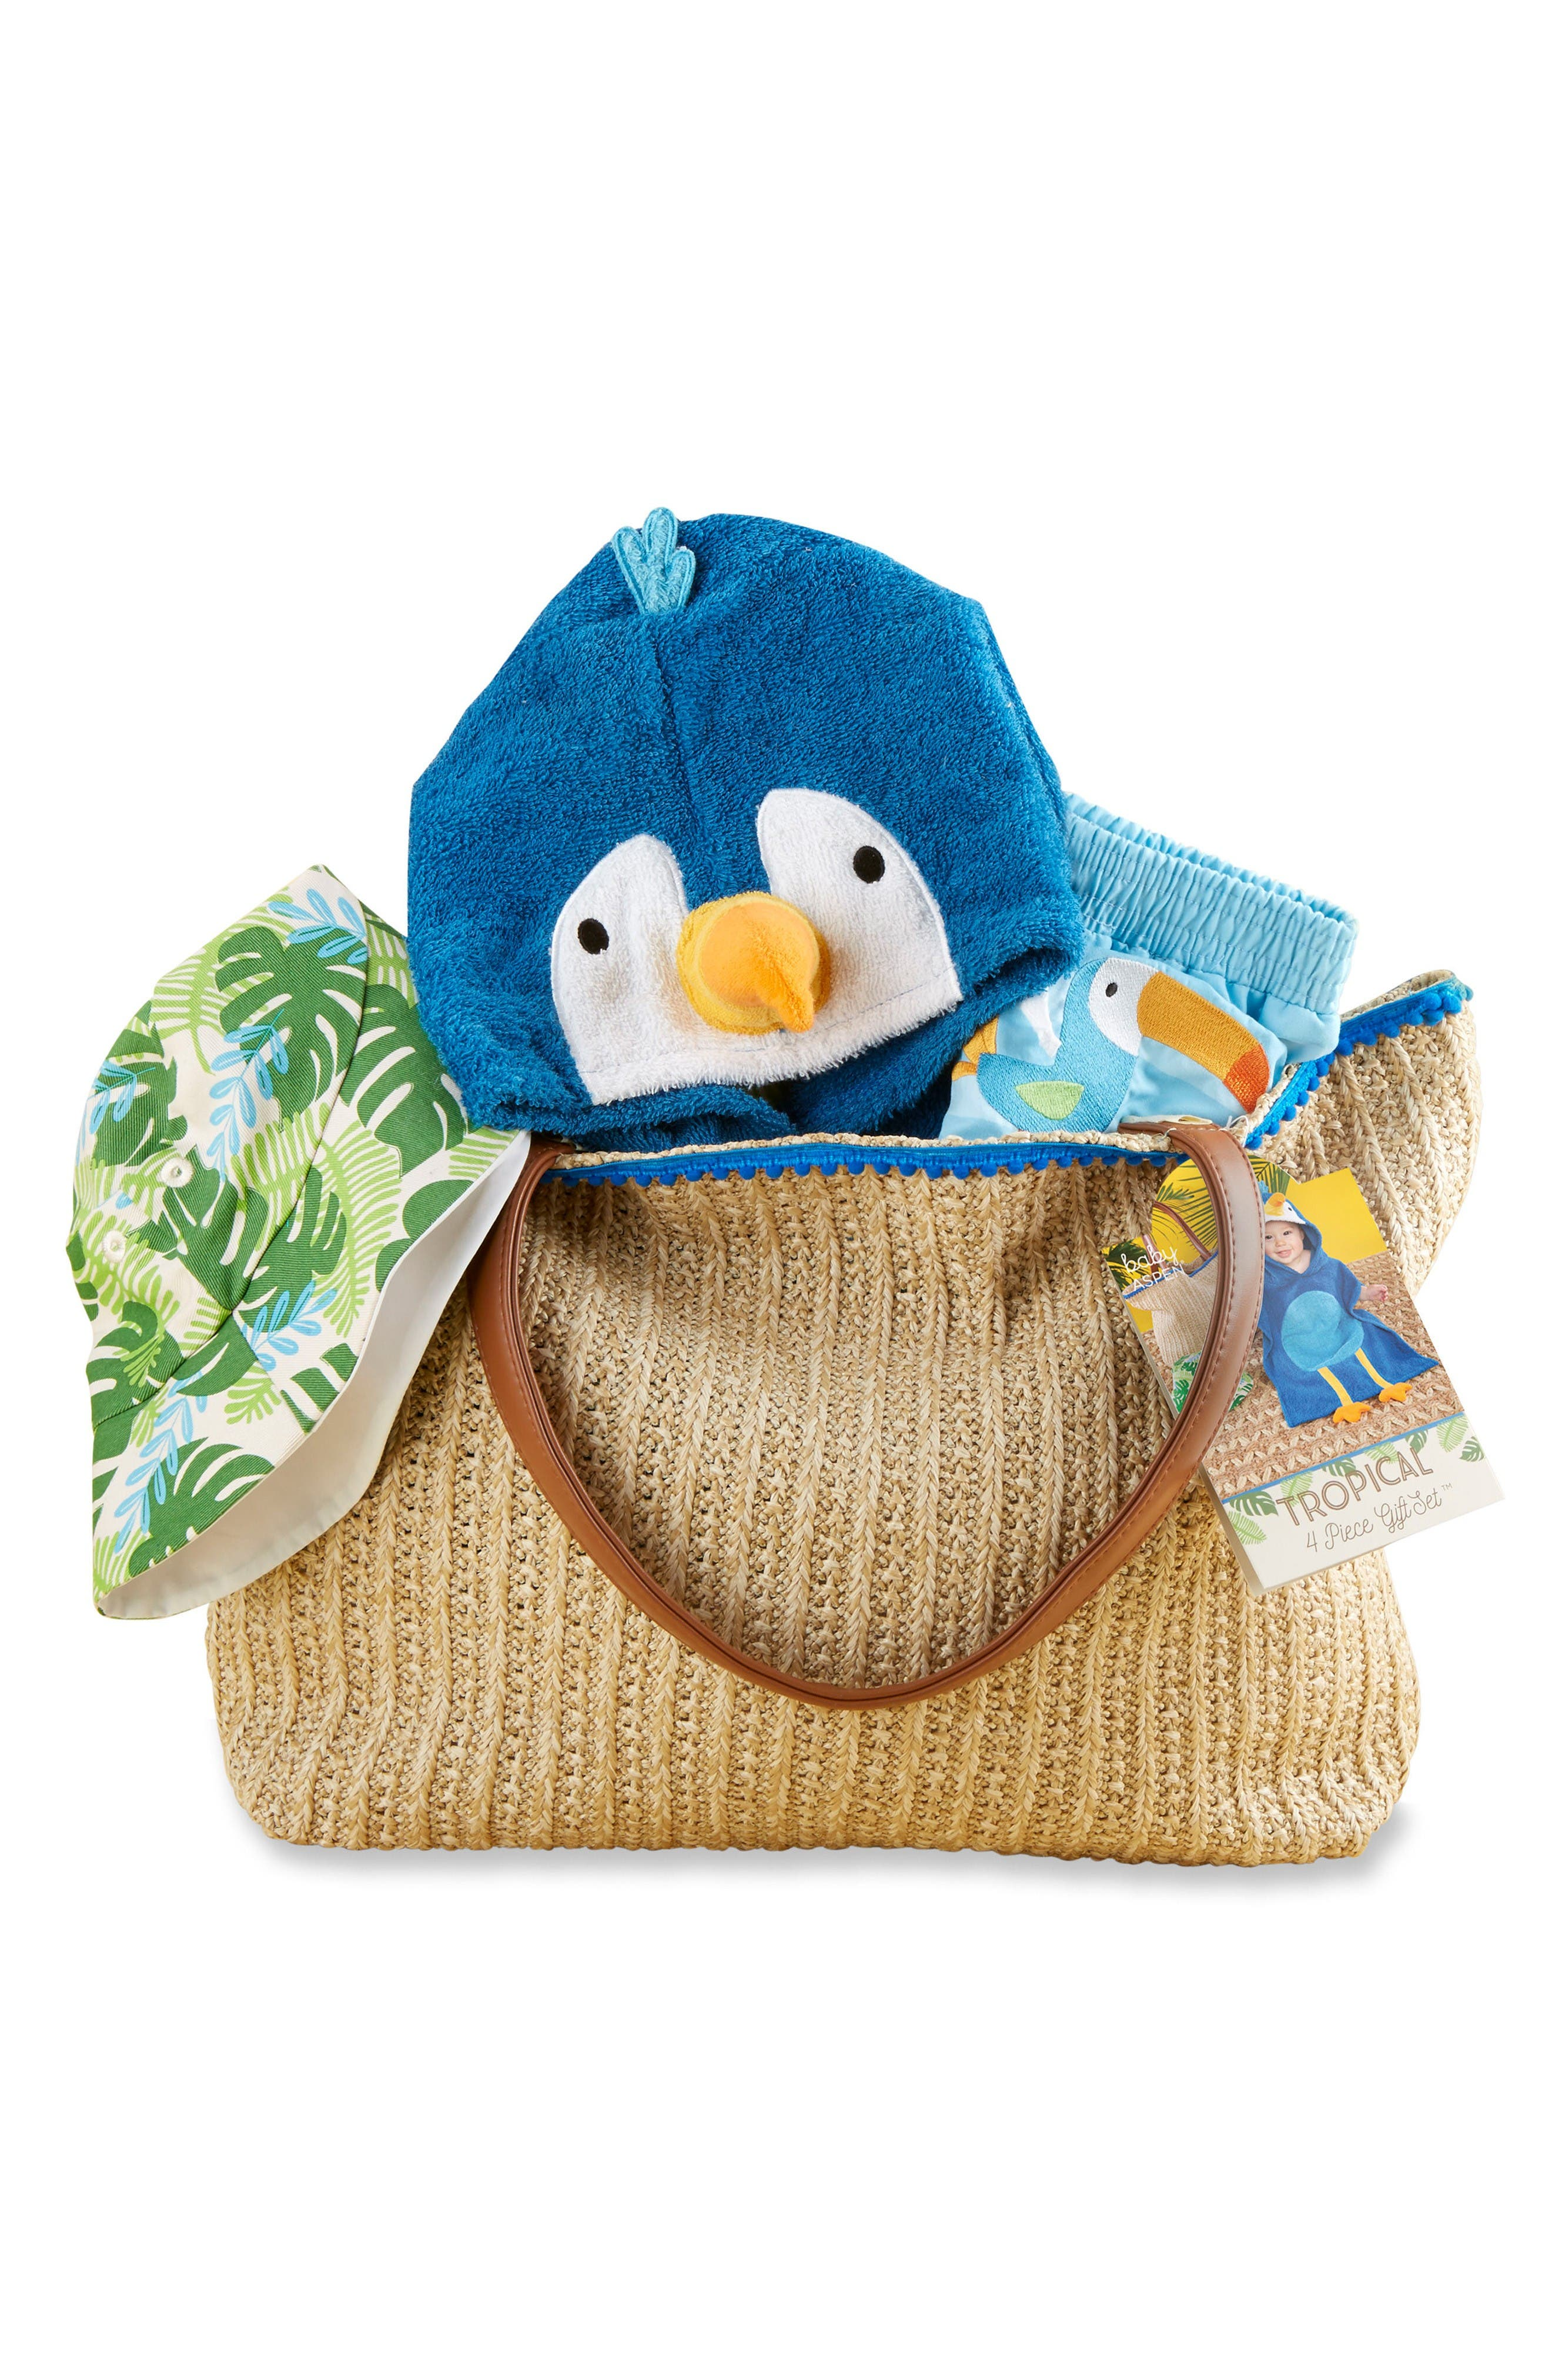 BABY ASPEN Tropical Hooded Towel, Swimsuit, Sun Hat & Tote Set